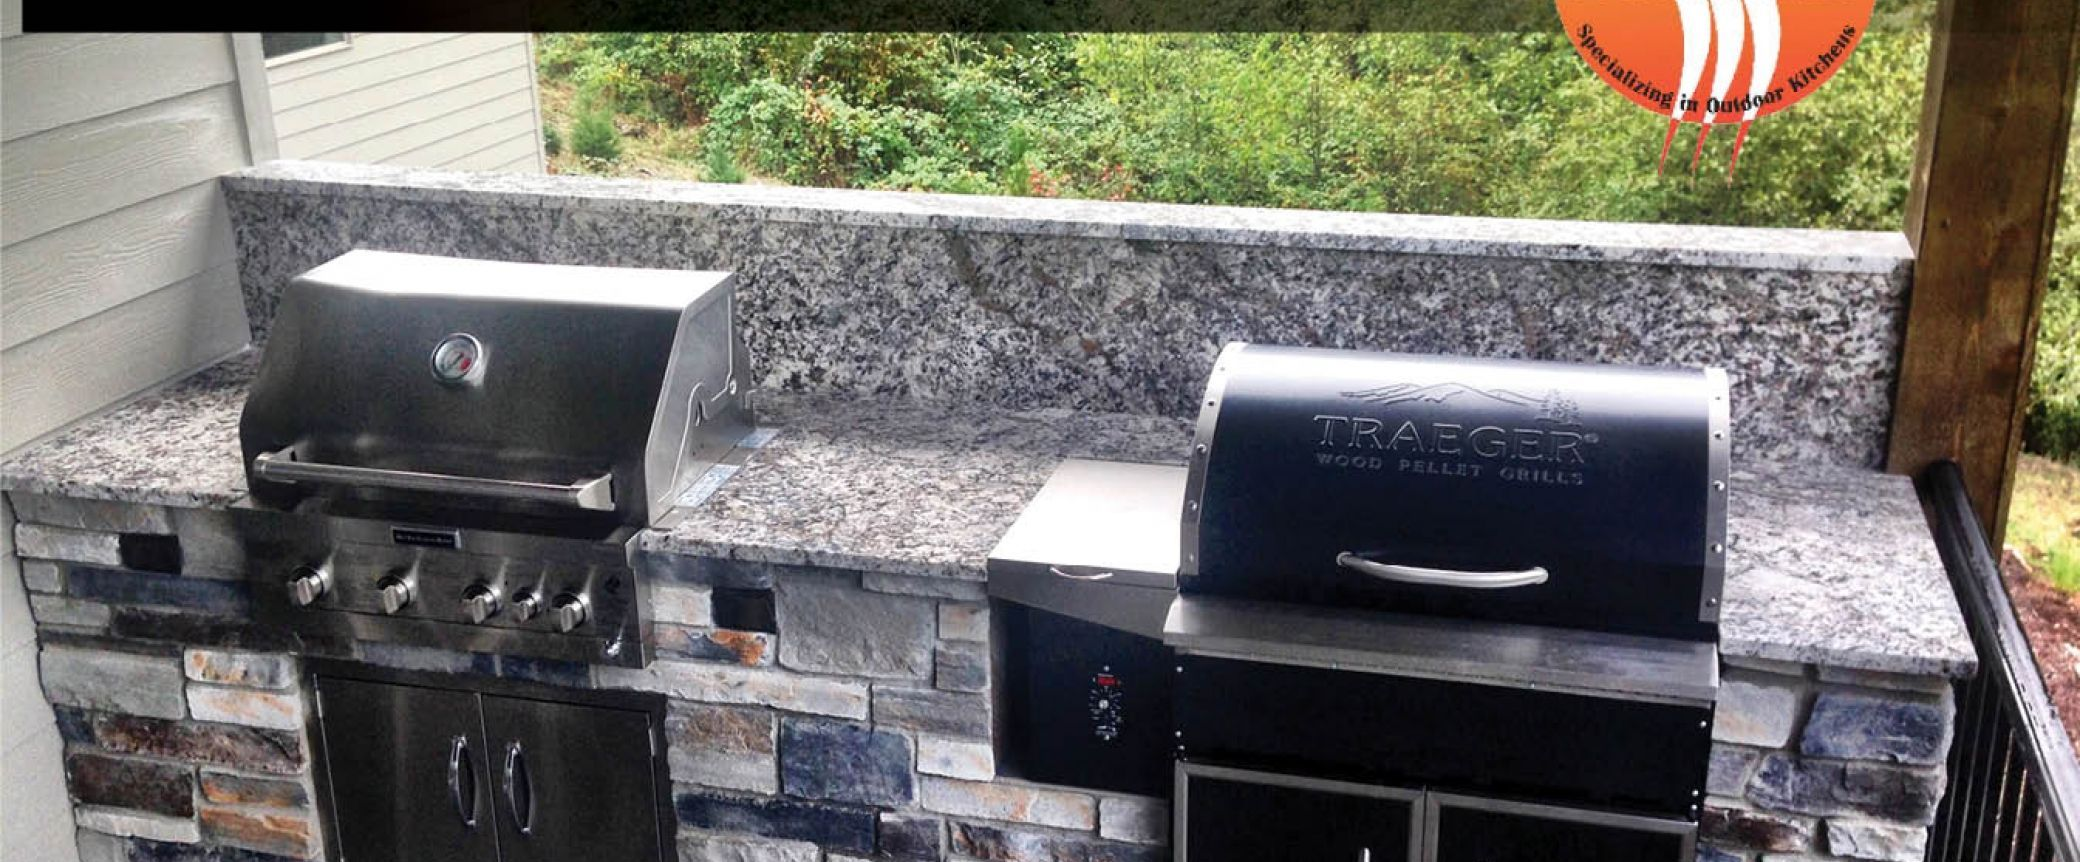 Paradise Outdoor Kitchens For Entertaining Guests In 2020 Outdoor Kitchen Plans Outdoor Kitchen Outdoor Kitchen Ideas Awesome